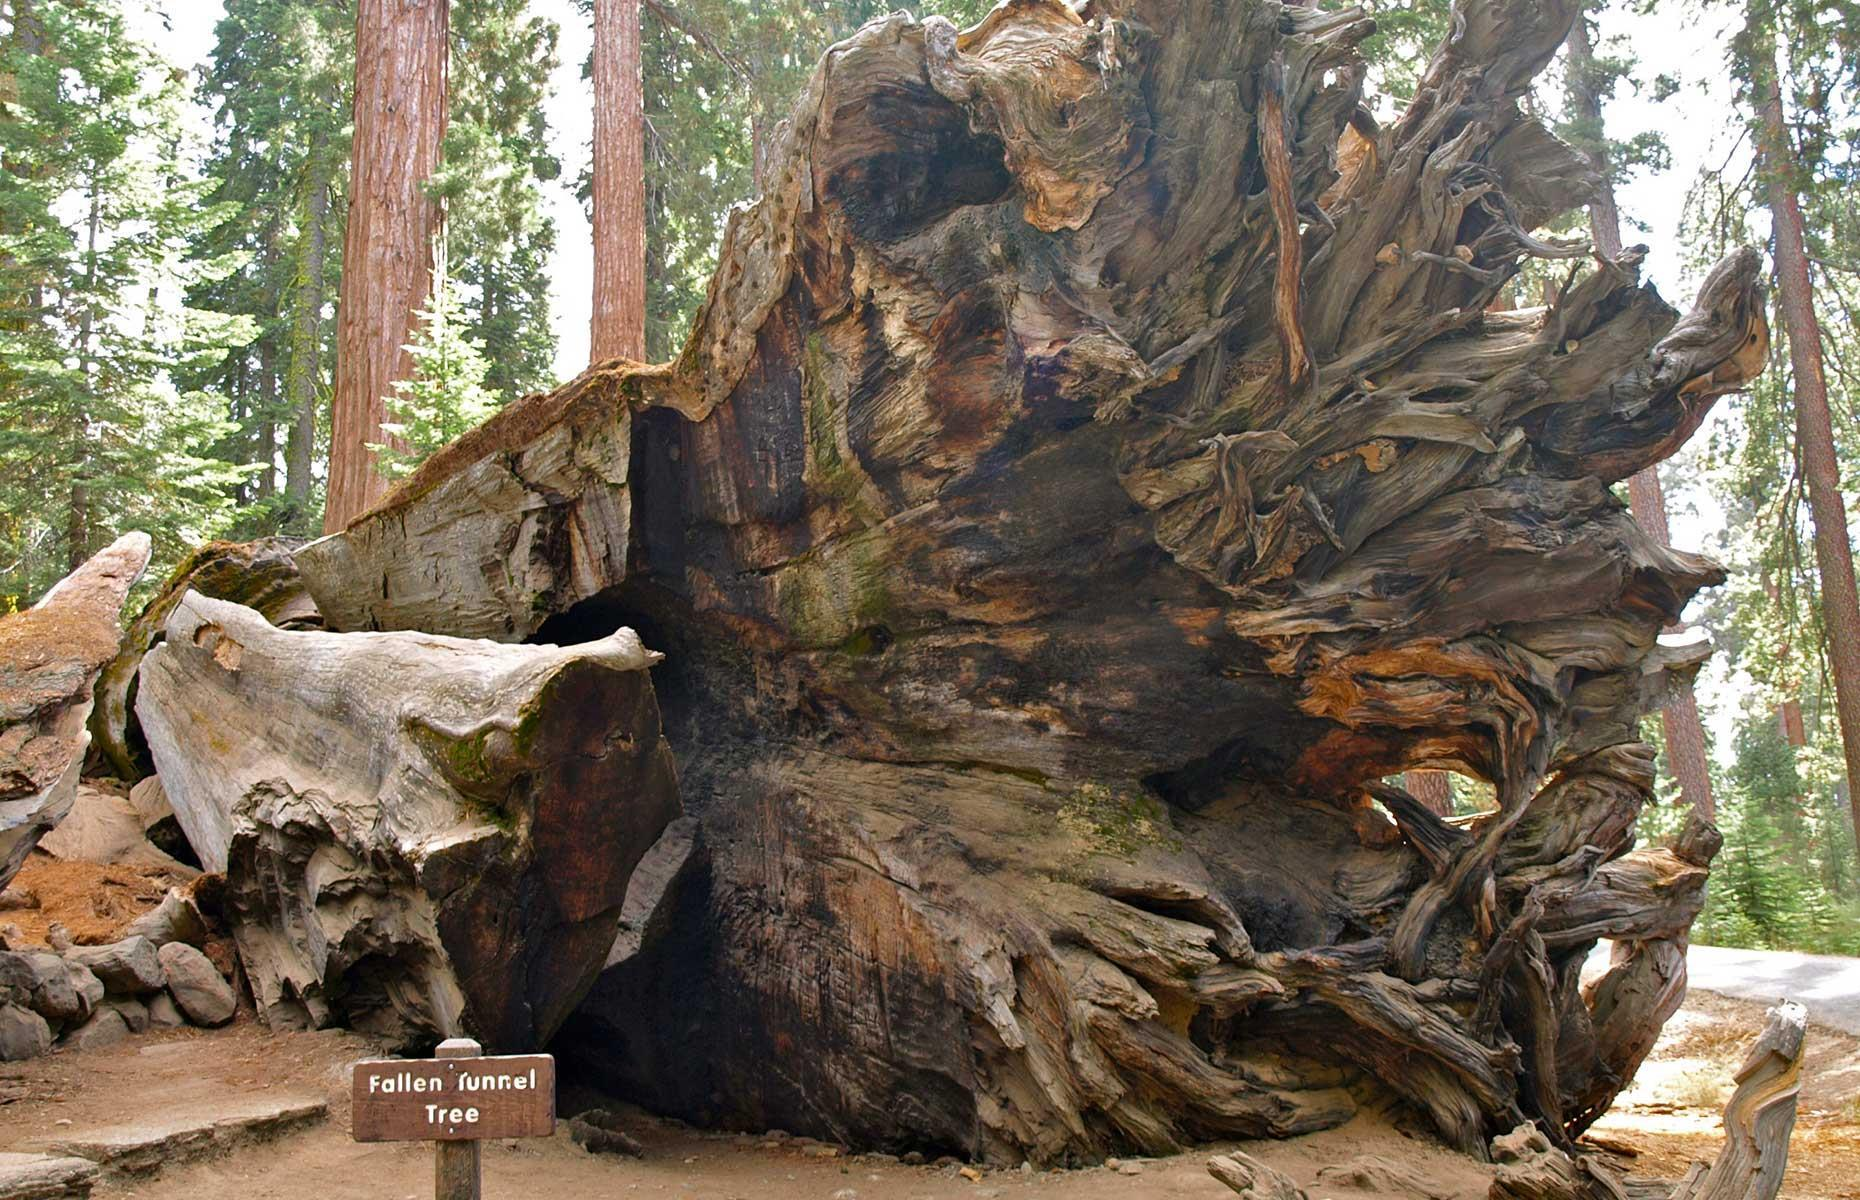 Slide 9 of 31: The tree had been standing for around 2,300 years when it finally toppled in 1969. Experts put the event down to natural factors including heavy snowfall and damp soil – their effects were exacerbated by the man-made tunnel which weakened the tree's trunk. The fallen tree is still marked with a sign. It's pictured here in 2012.